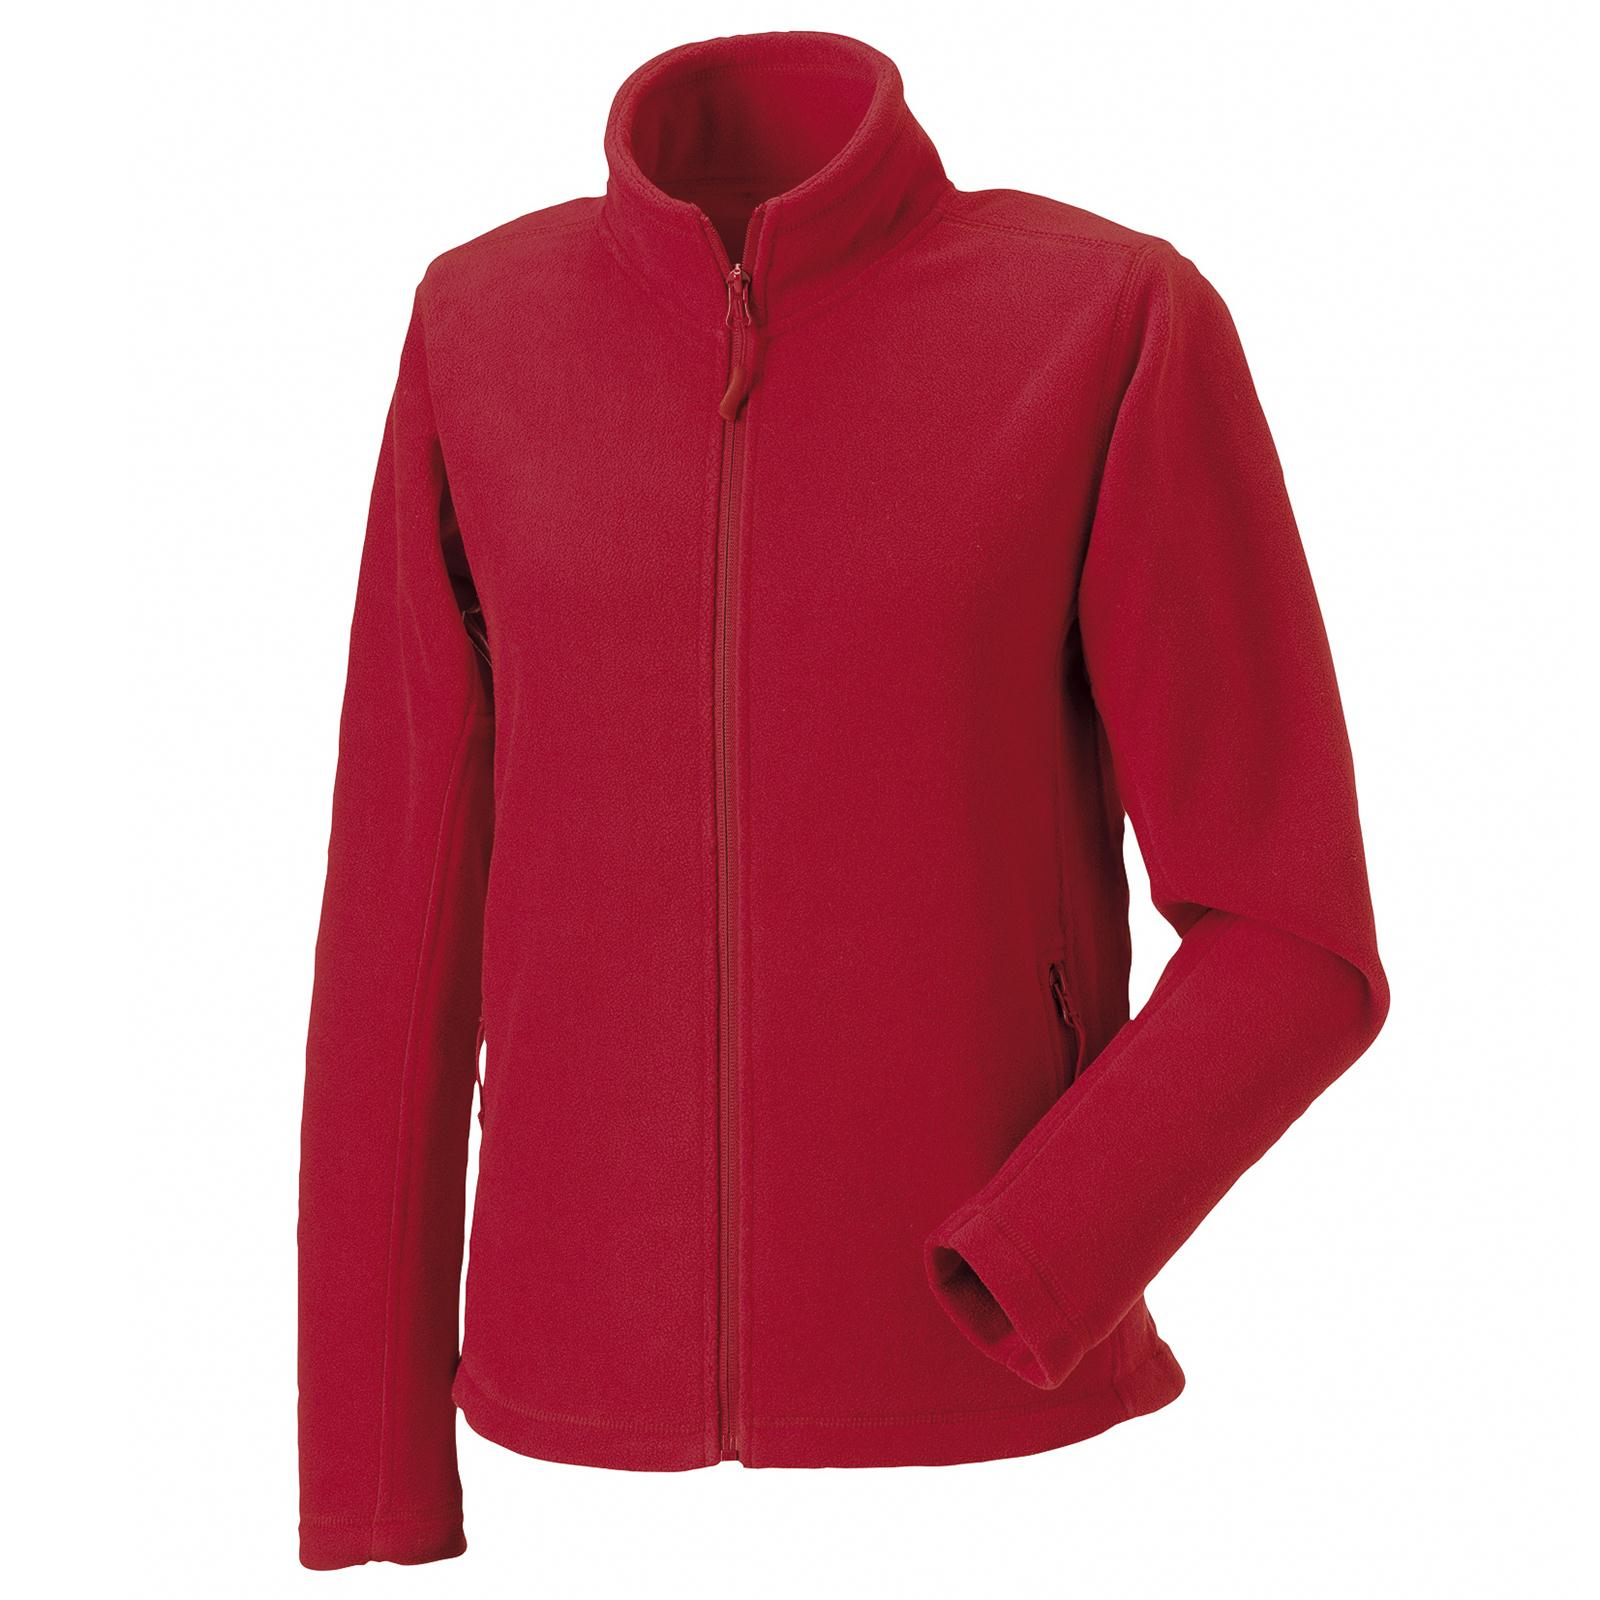 New RUSSELL Ladies Womens Full Zip Outdoor Fleece Jacket in 9 ...